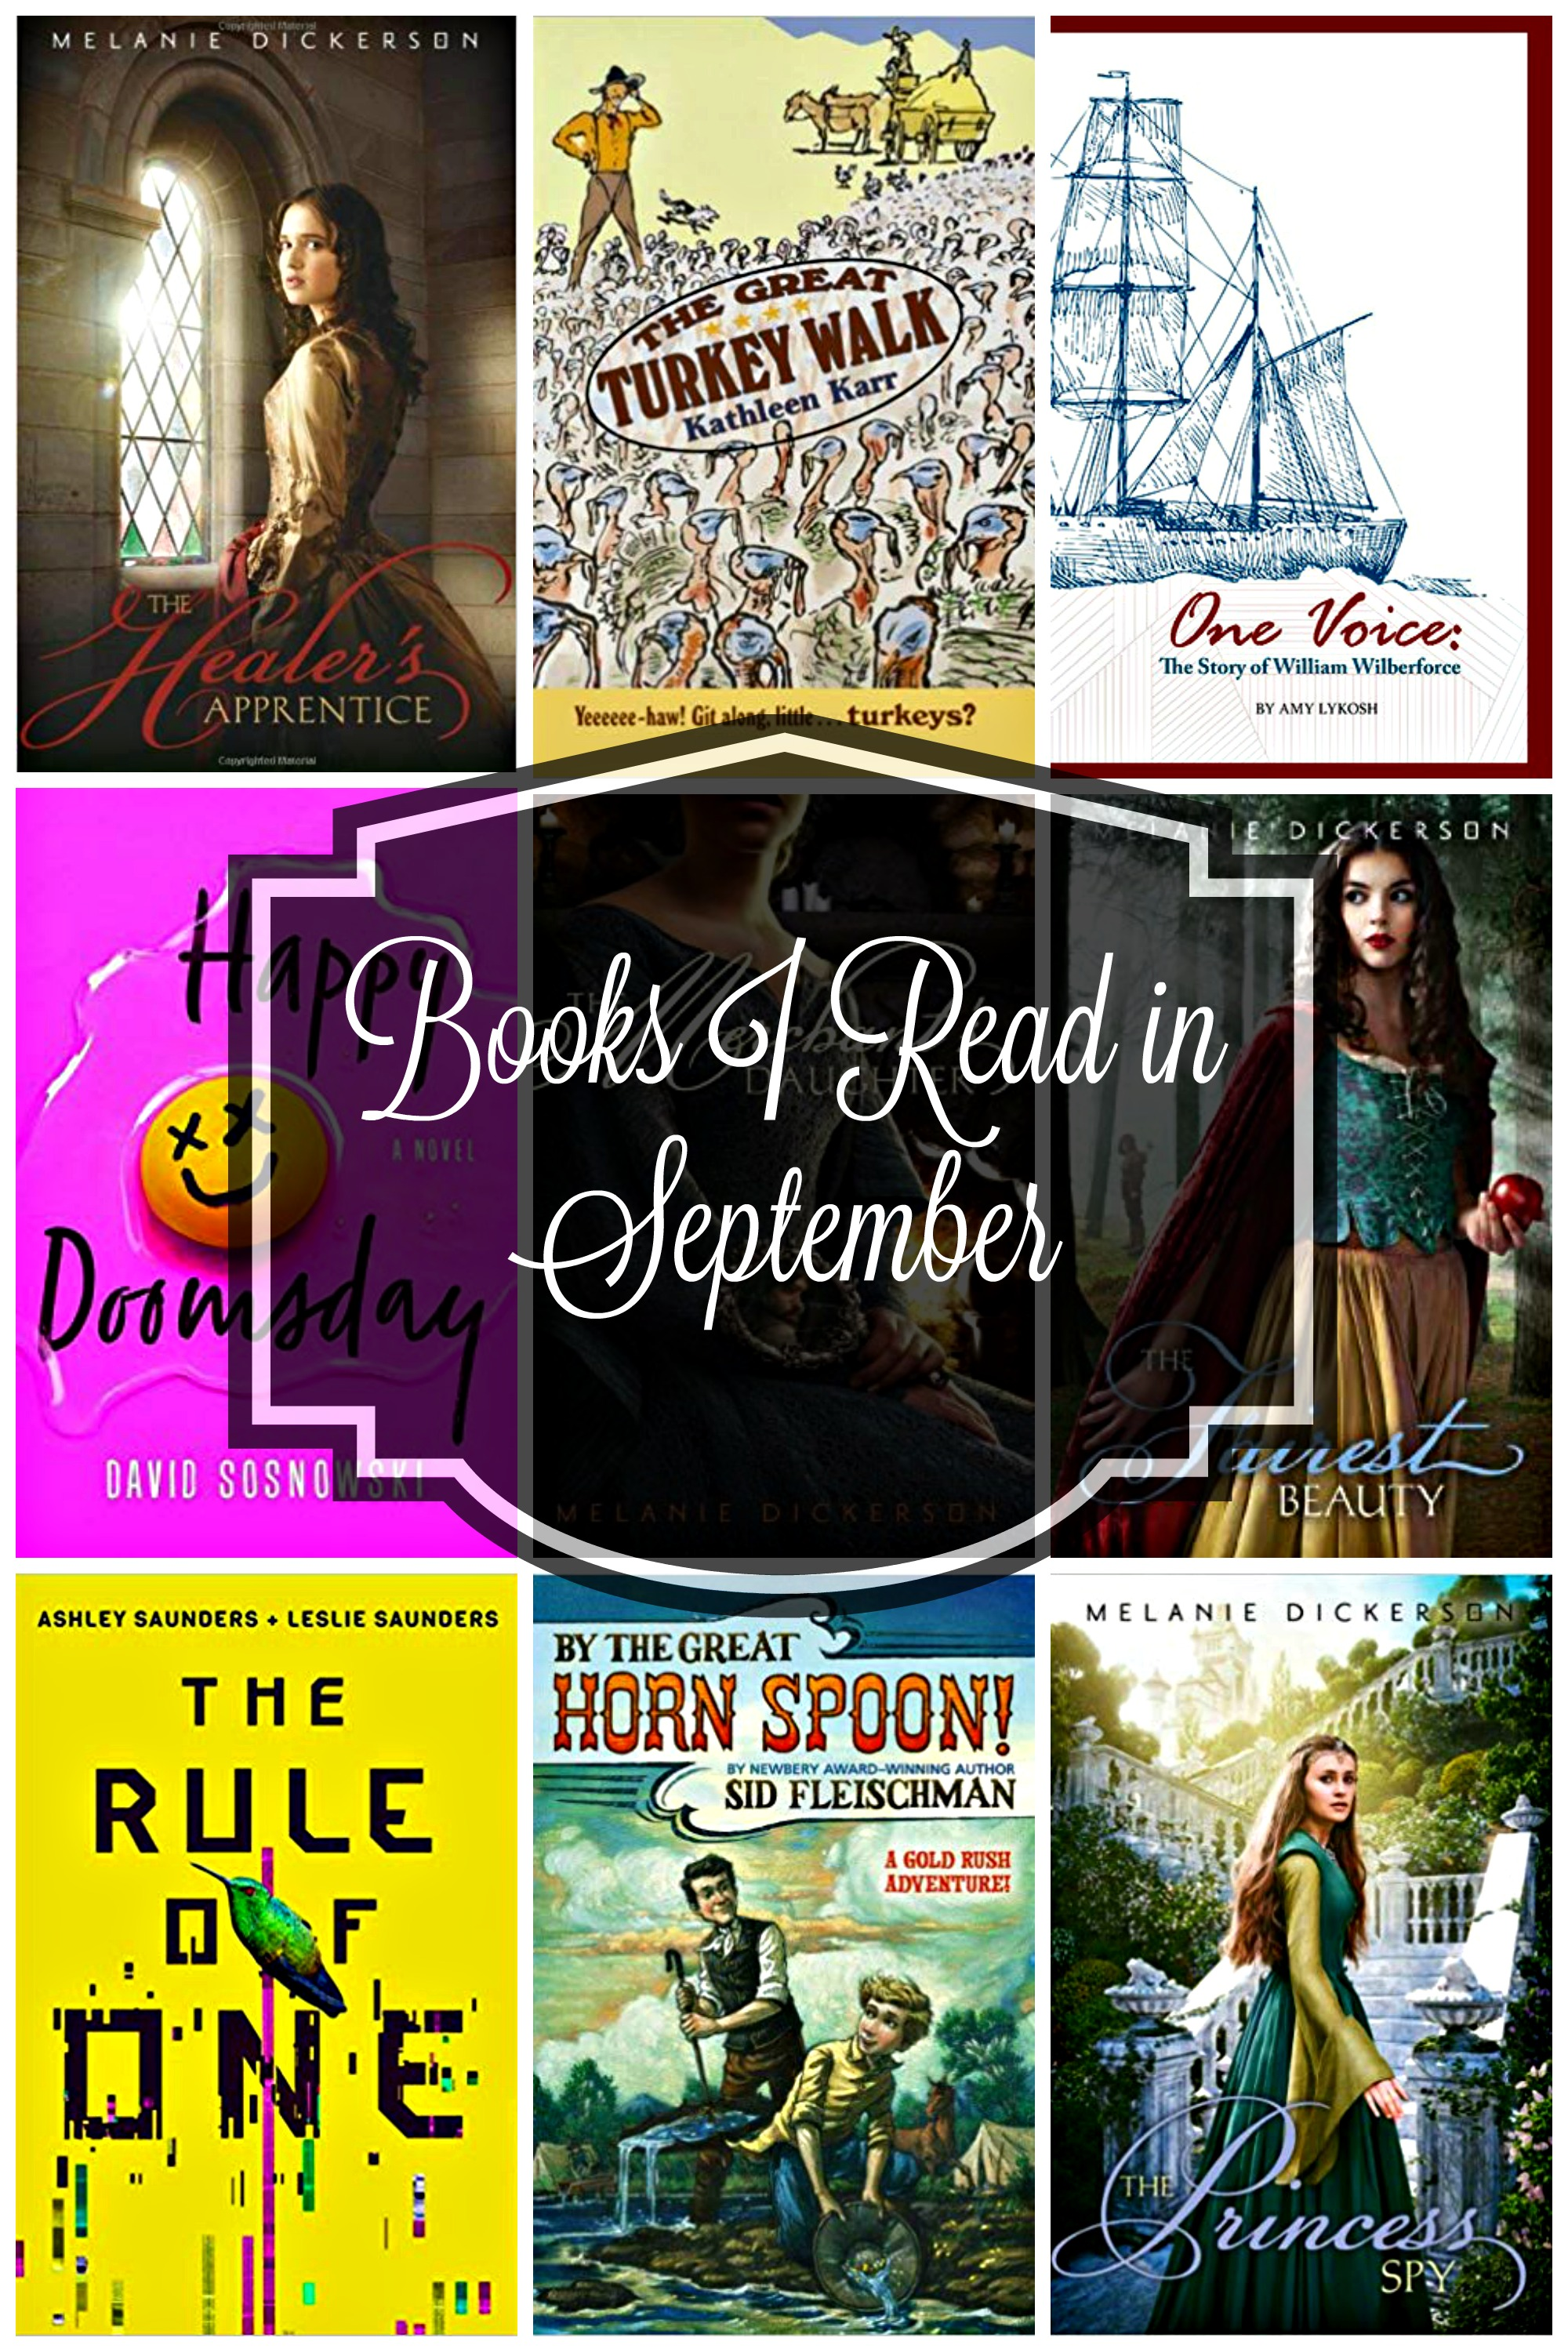 Books I read in September. They range from a biography to romance and historical fiction to distopian end of the world books.